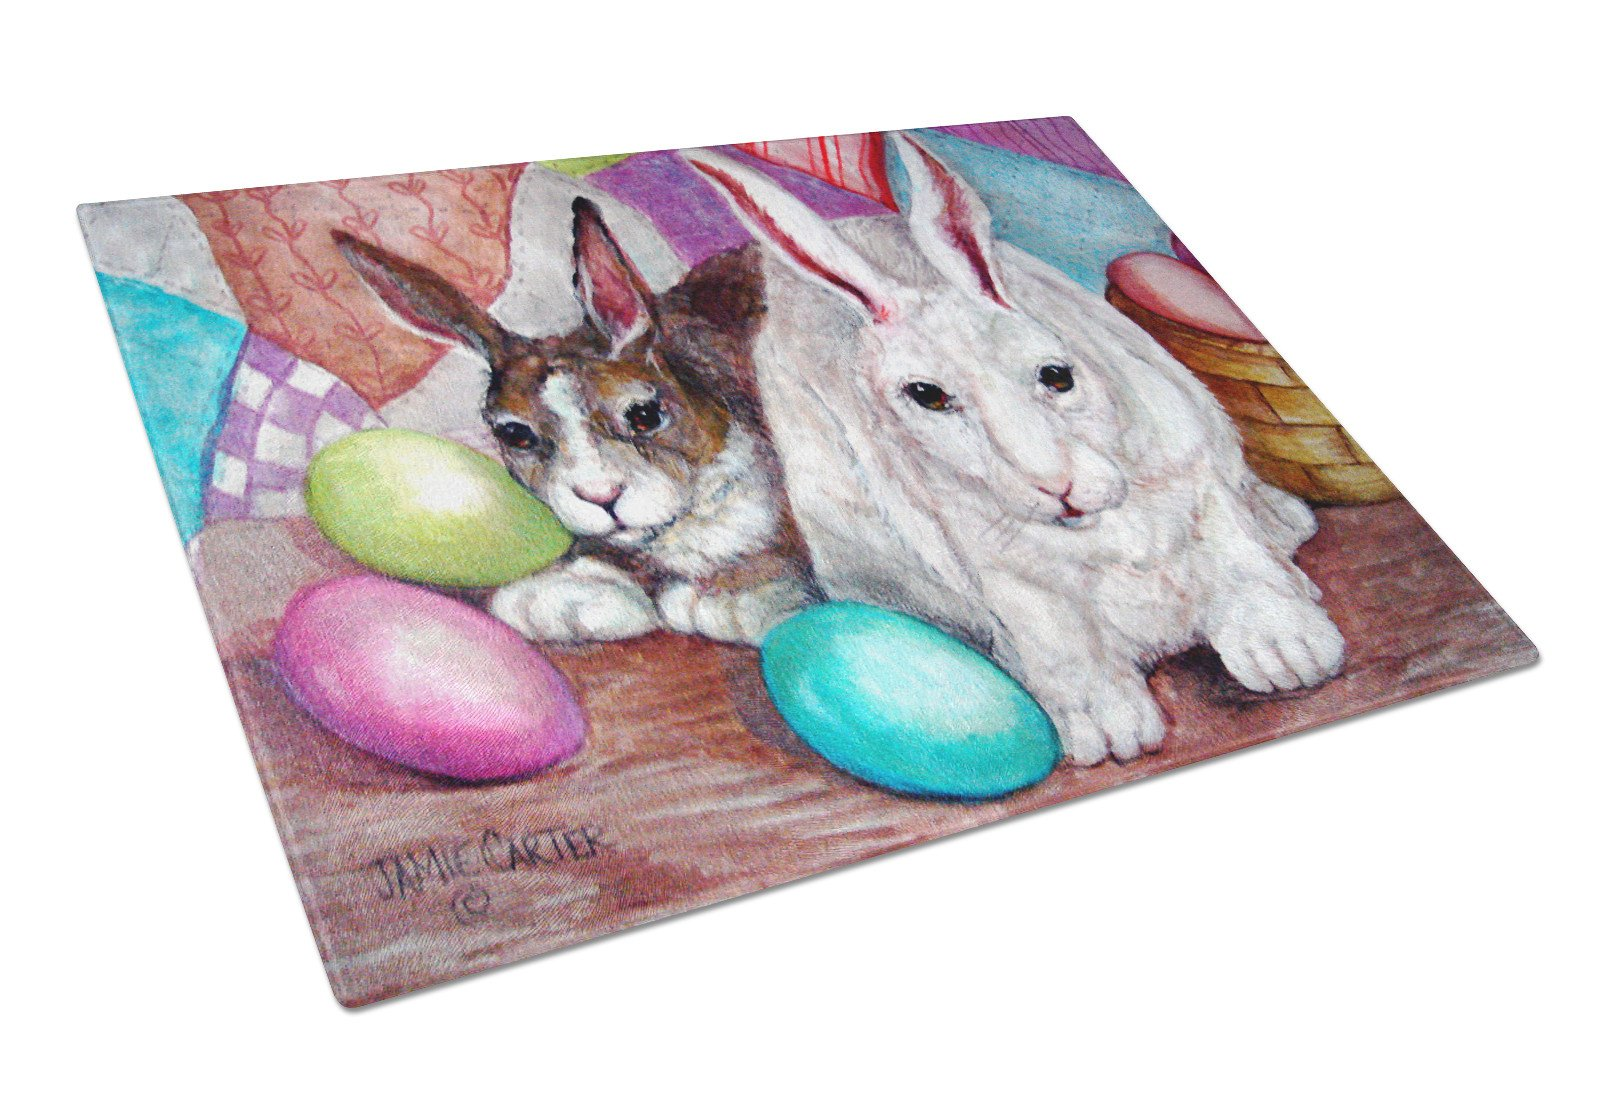 Buddy Buddies Easter Rabbit Glass Cutting Board Large PJC1064LCB by Caroline's Treasures